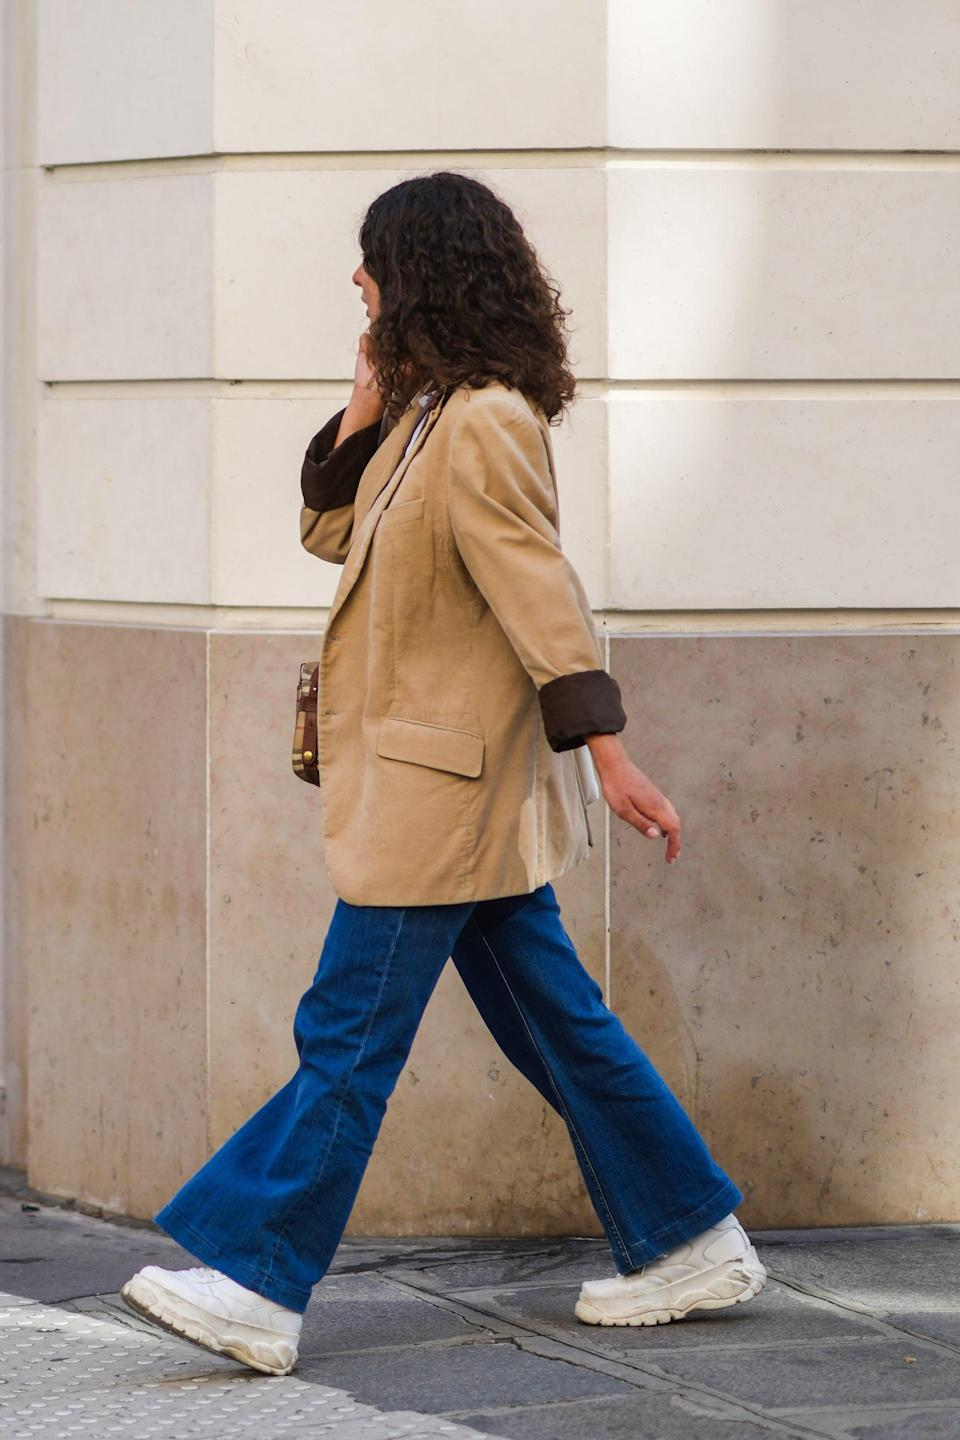 <p>Seventies-style bell-bottoms are making a serious comeback. Wearing them is one of the easiest ways to create a polished look, paired with either a cable knit, tank top, breezy blouse, or T-shirt. Channel your inner bohemian and complete them with a clog or platform boot. A lot of the styles come in stretch denim, too, so if rigid denim's just not for you, you're in luck.</p>